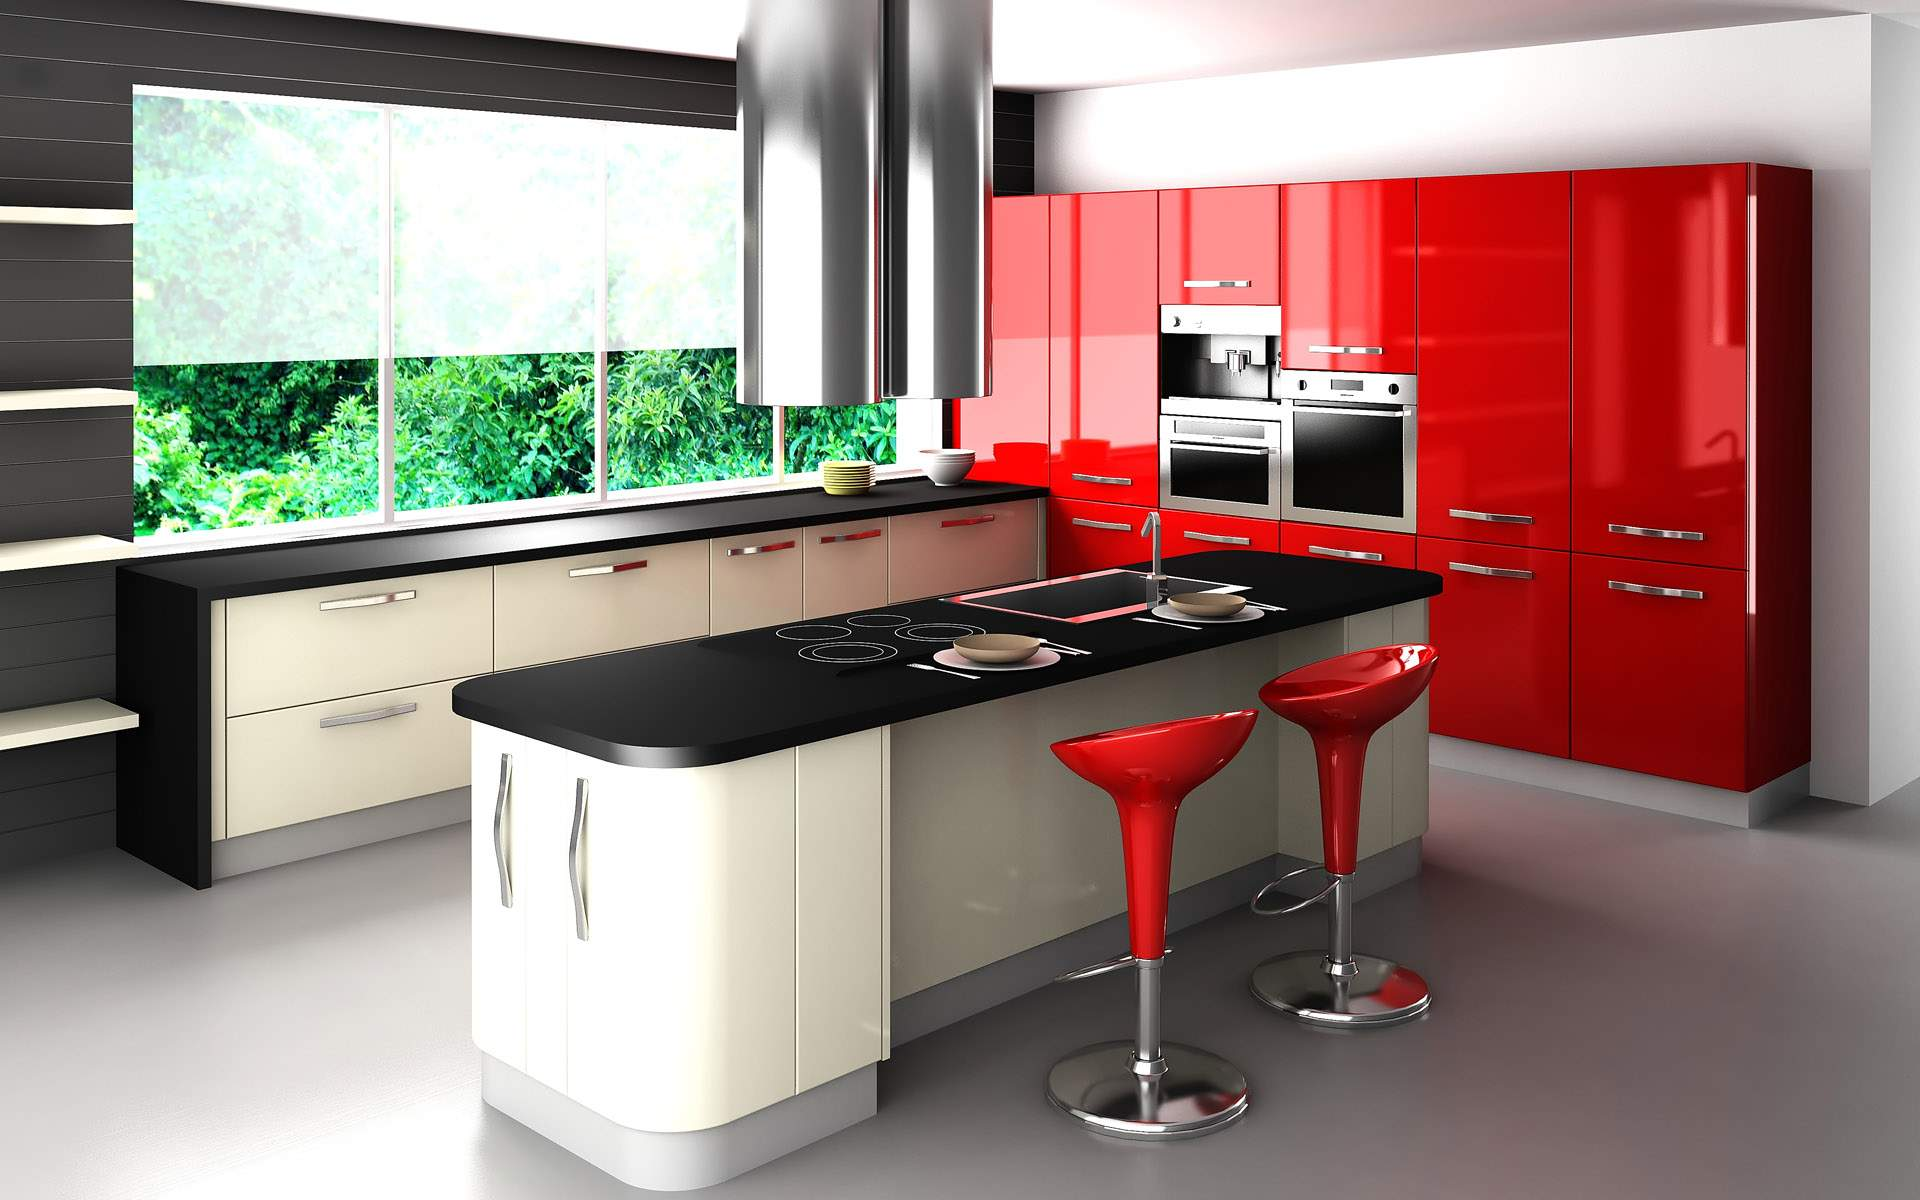 Divine Room with Black also White plus Red Kitchen Cabinet for Spacious Room